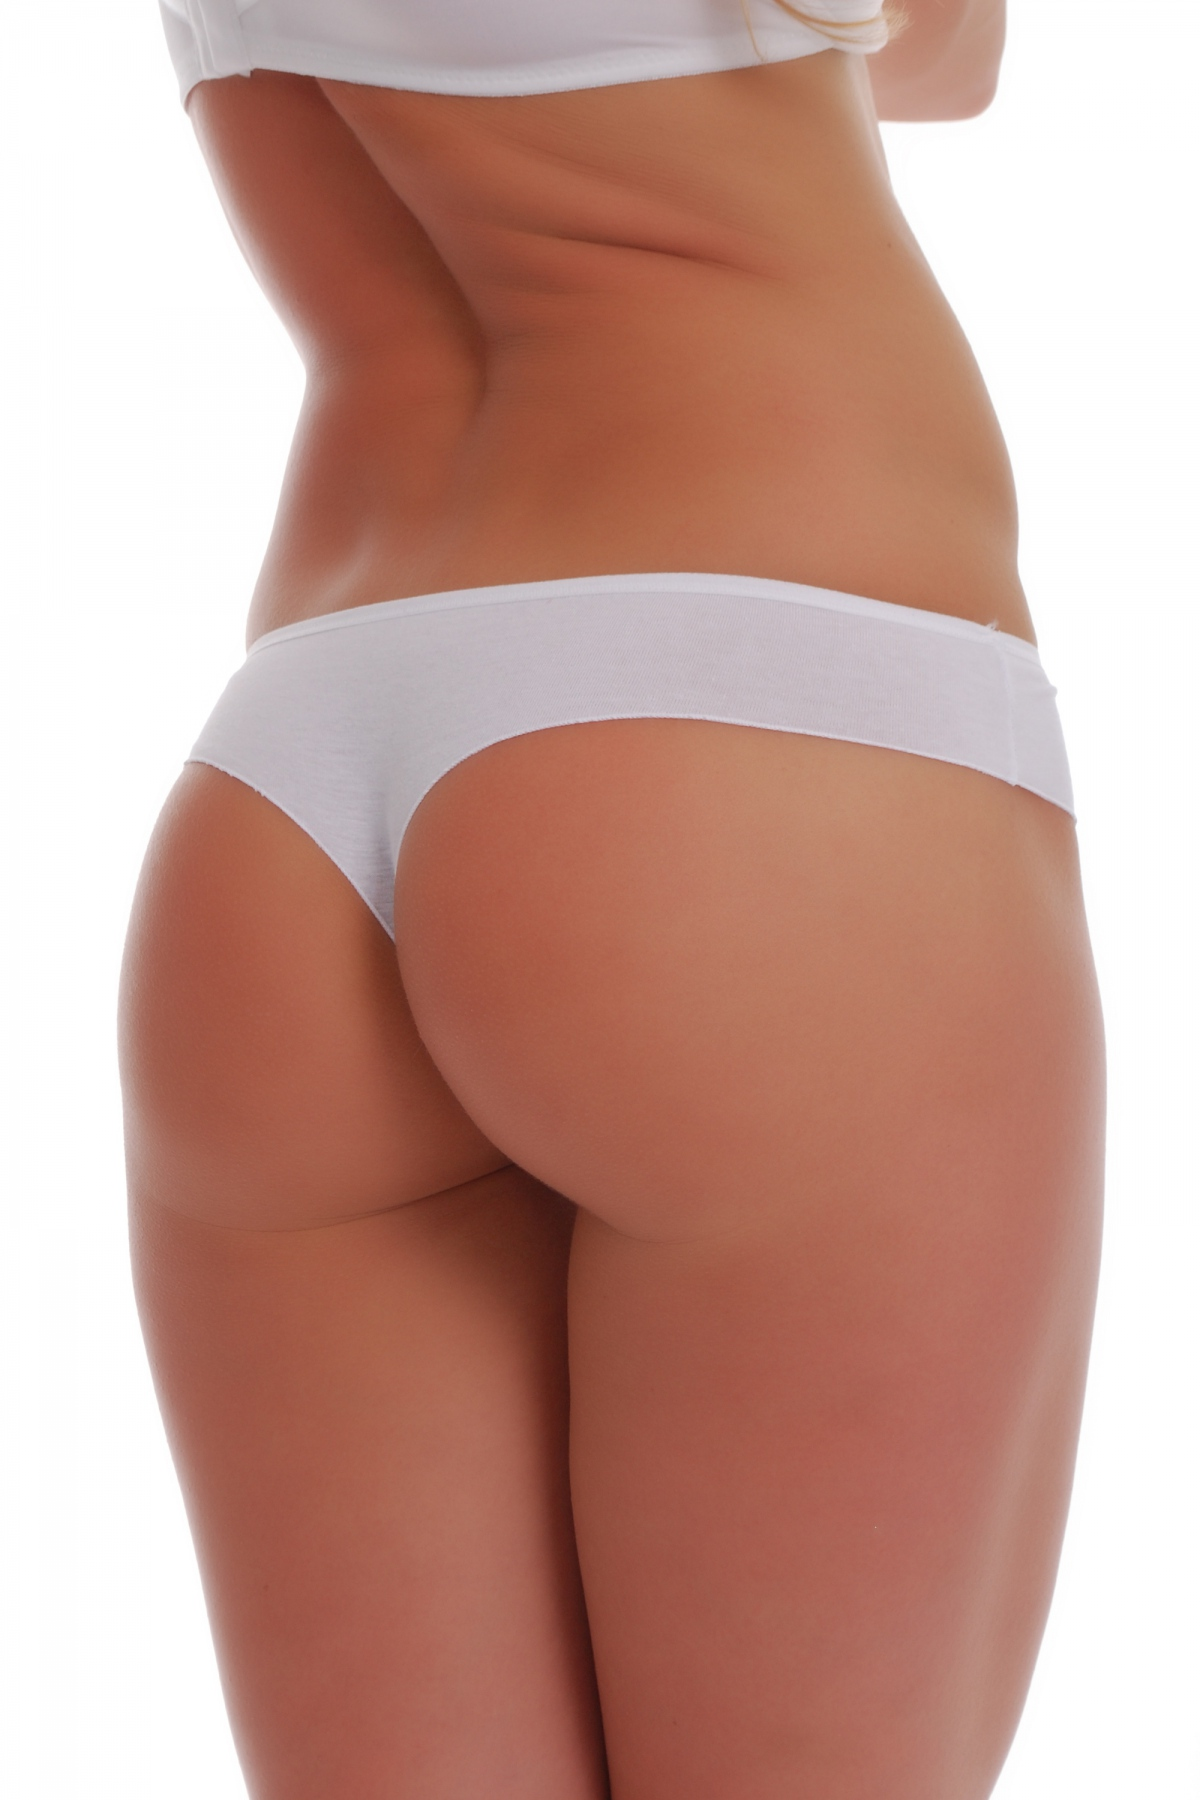 Sexy thongs and women's underwear are available at rusticzcountrysstylexhomedecor.tk Shop thongs, bikinis, cotton panties boy briefs & more. FREE shipping available.